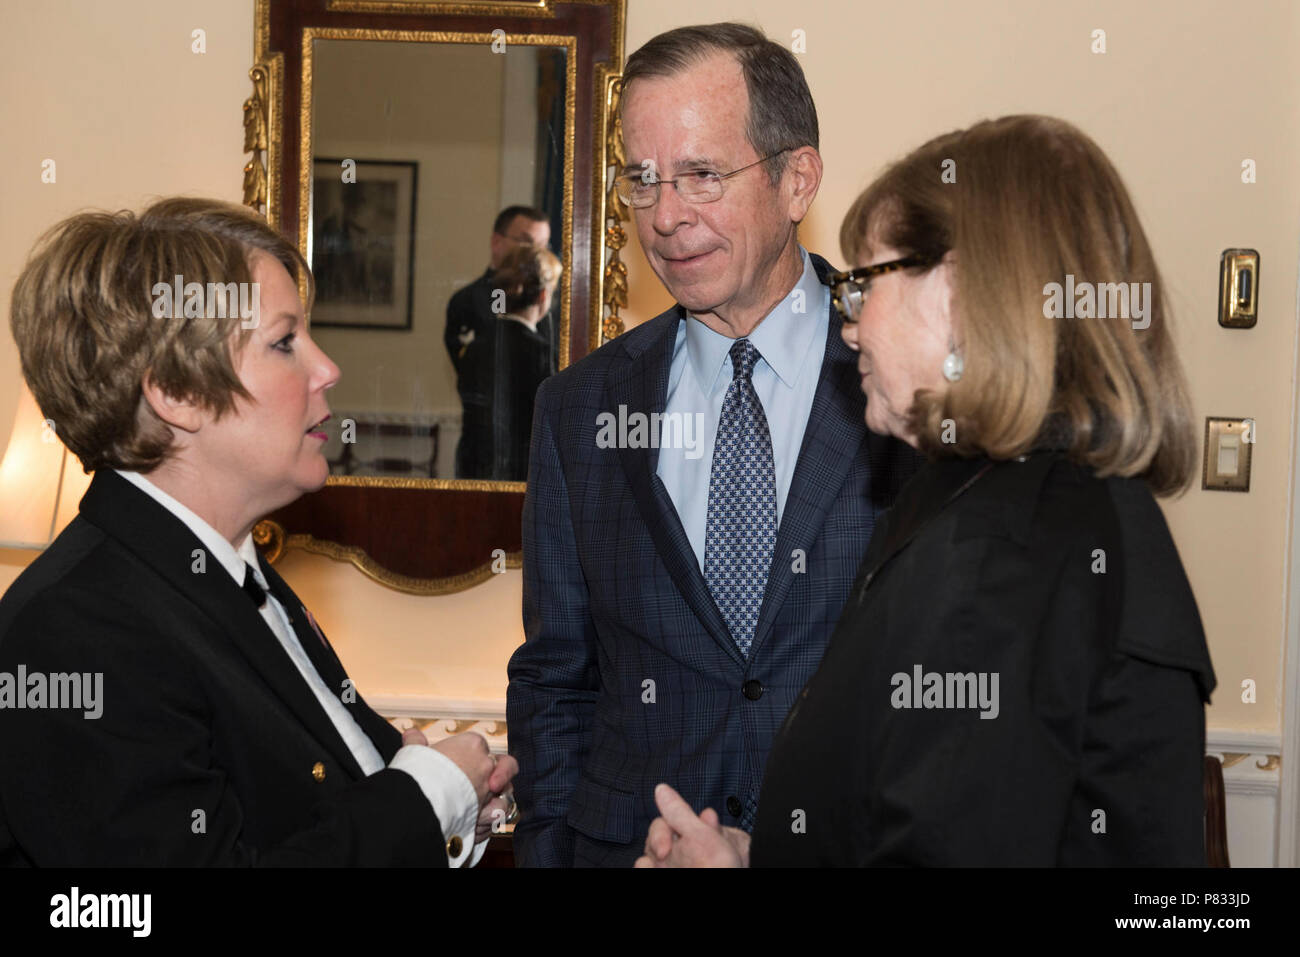 WASHINGTON (Dec. 18, 2016) Chief Petty Officer Shana Sullivan, left, meets former Chairman of the Joint Chiefs of Staff, Adm. Michael Mullen, right, backstage after the Sunday afternoon Navy Band Holiday Concert held at DAR Constitiution Hall in Washington, D.C. The Navy Band hosted thousands of people from the Washington area as well as hundreds of senior Navy and government officials during its three annual holiday concerts. - Stock Image